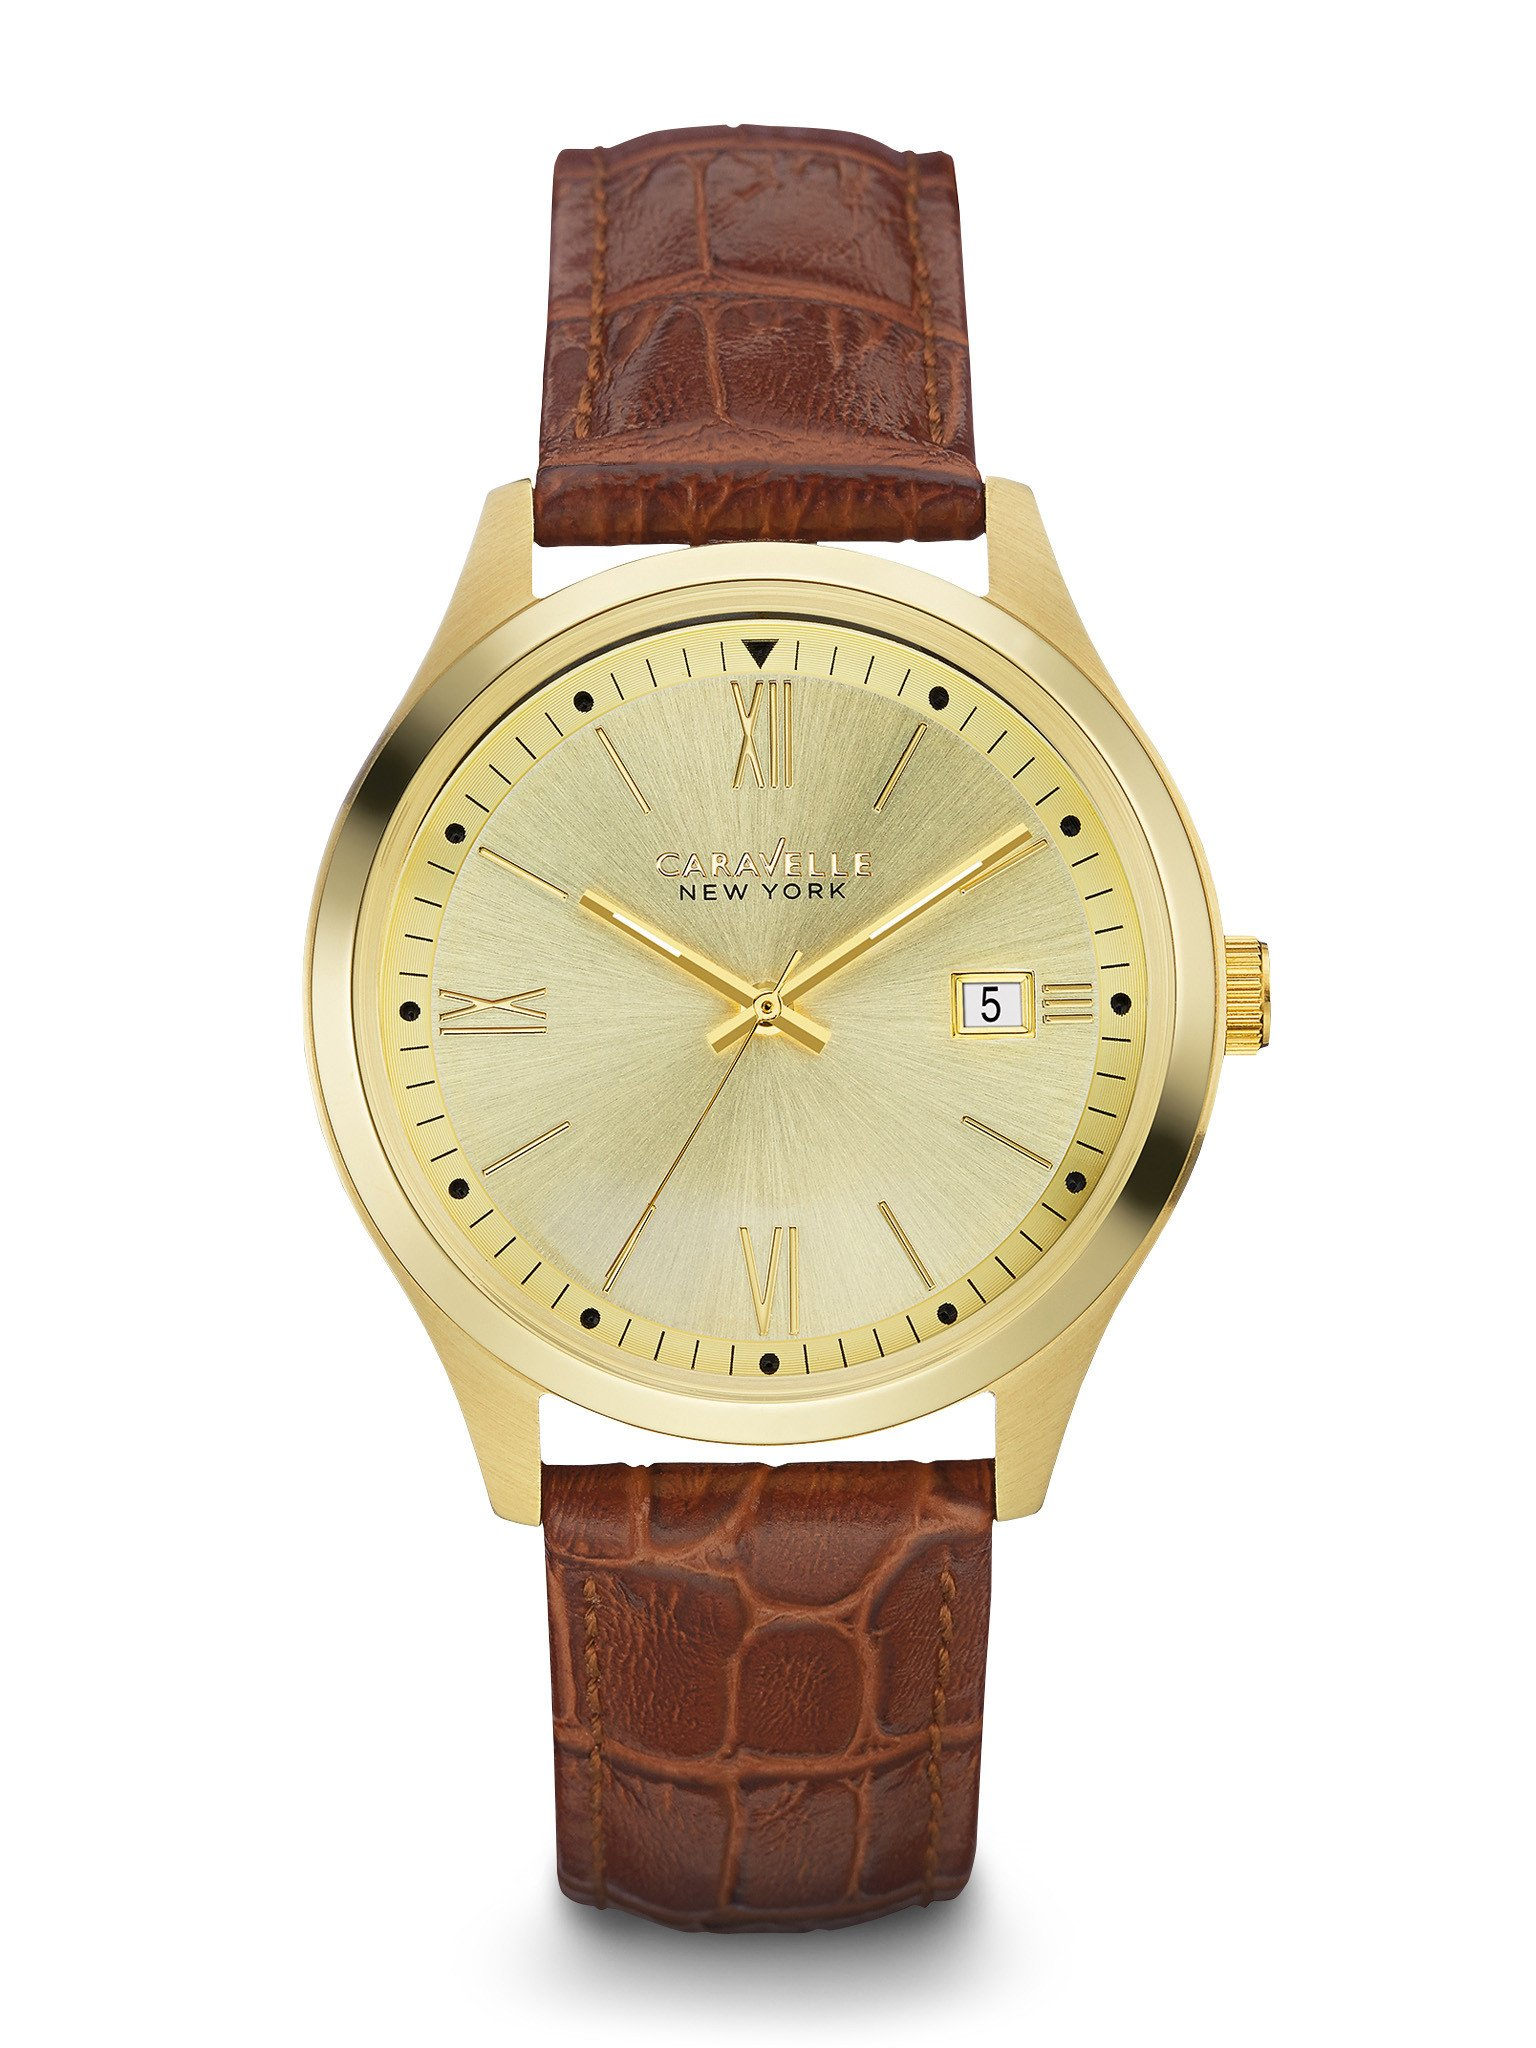 New York watch for men - Champagne dial & Brown leather strap